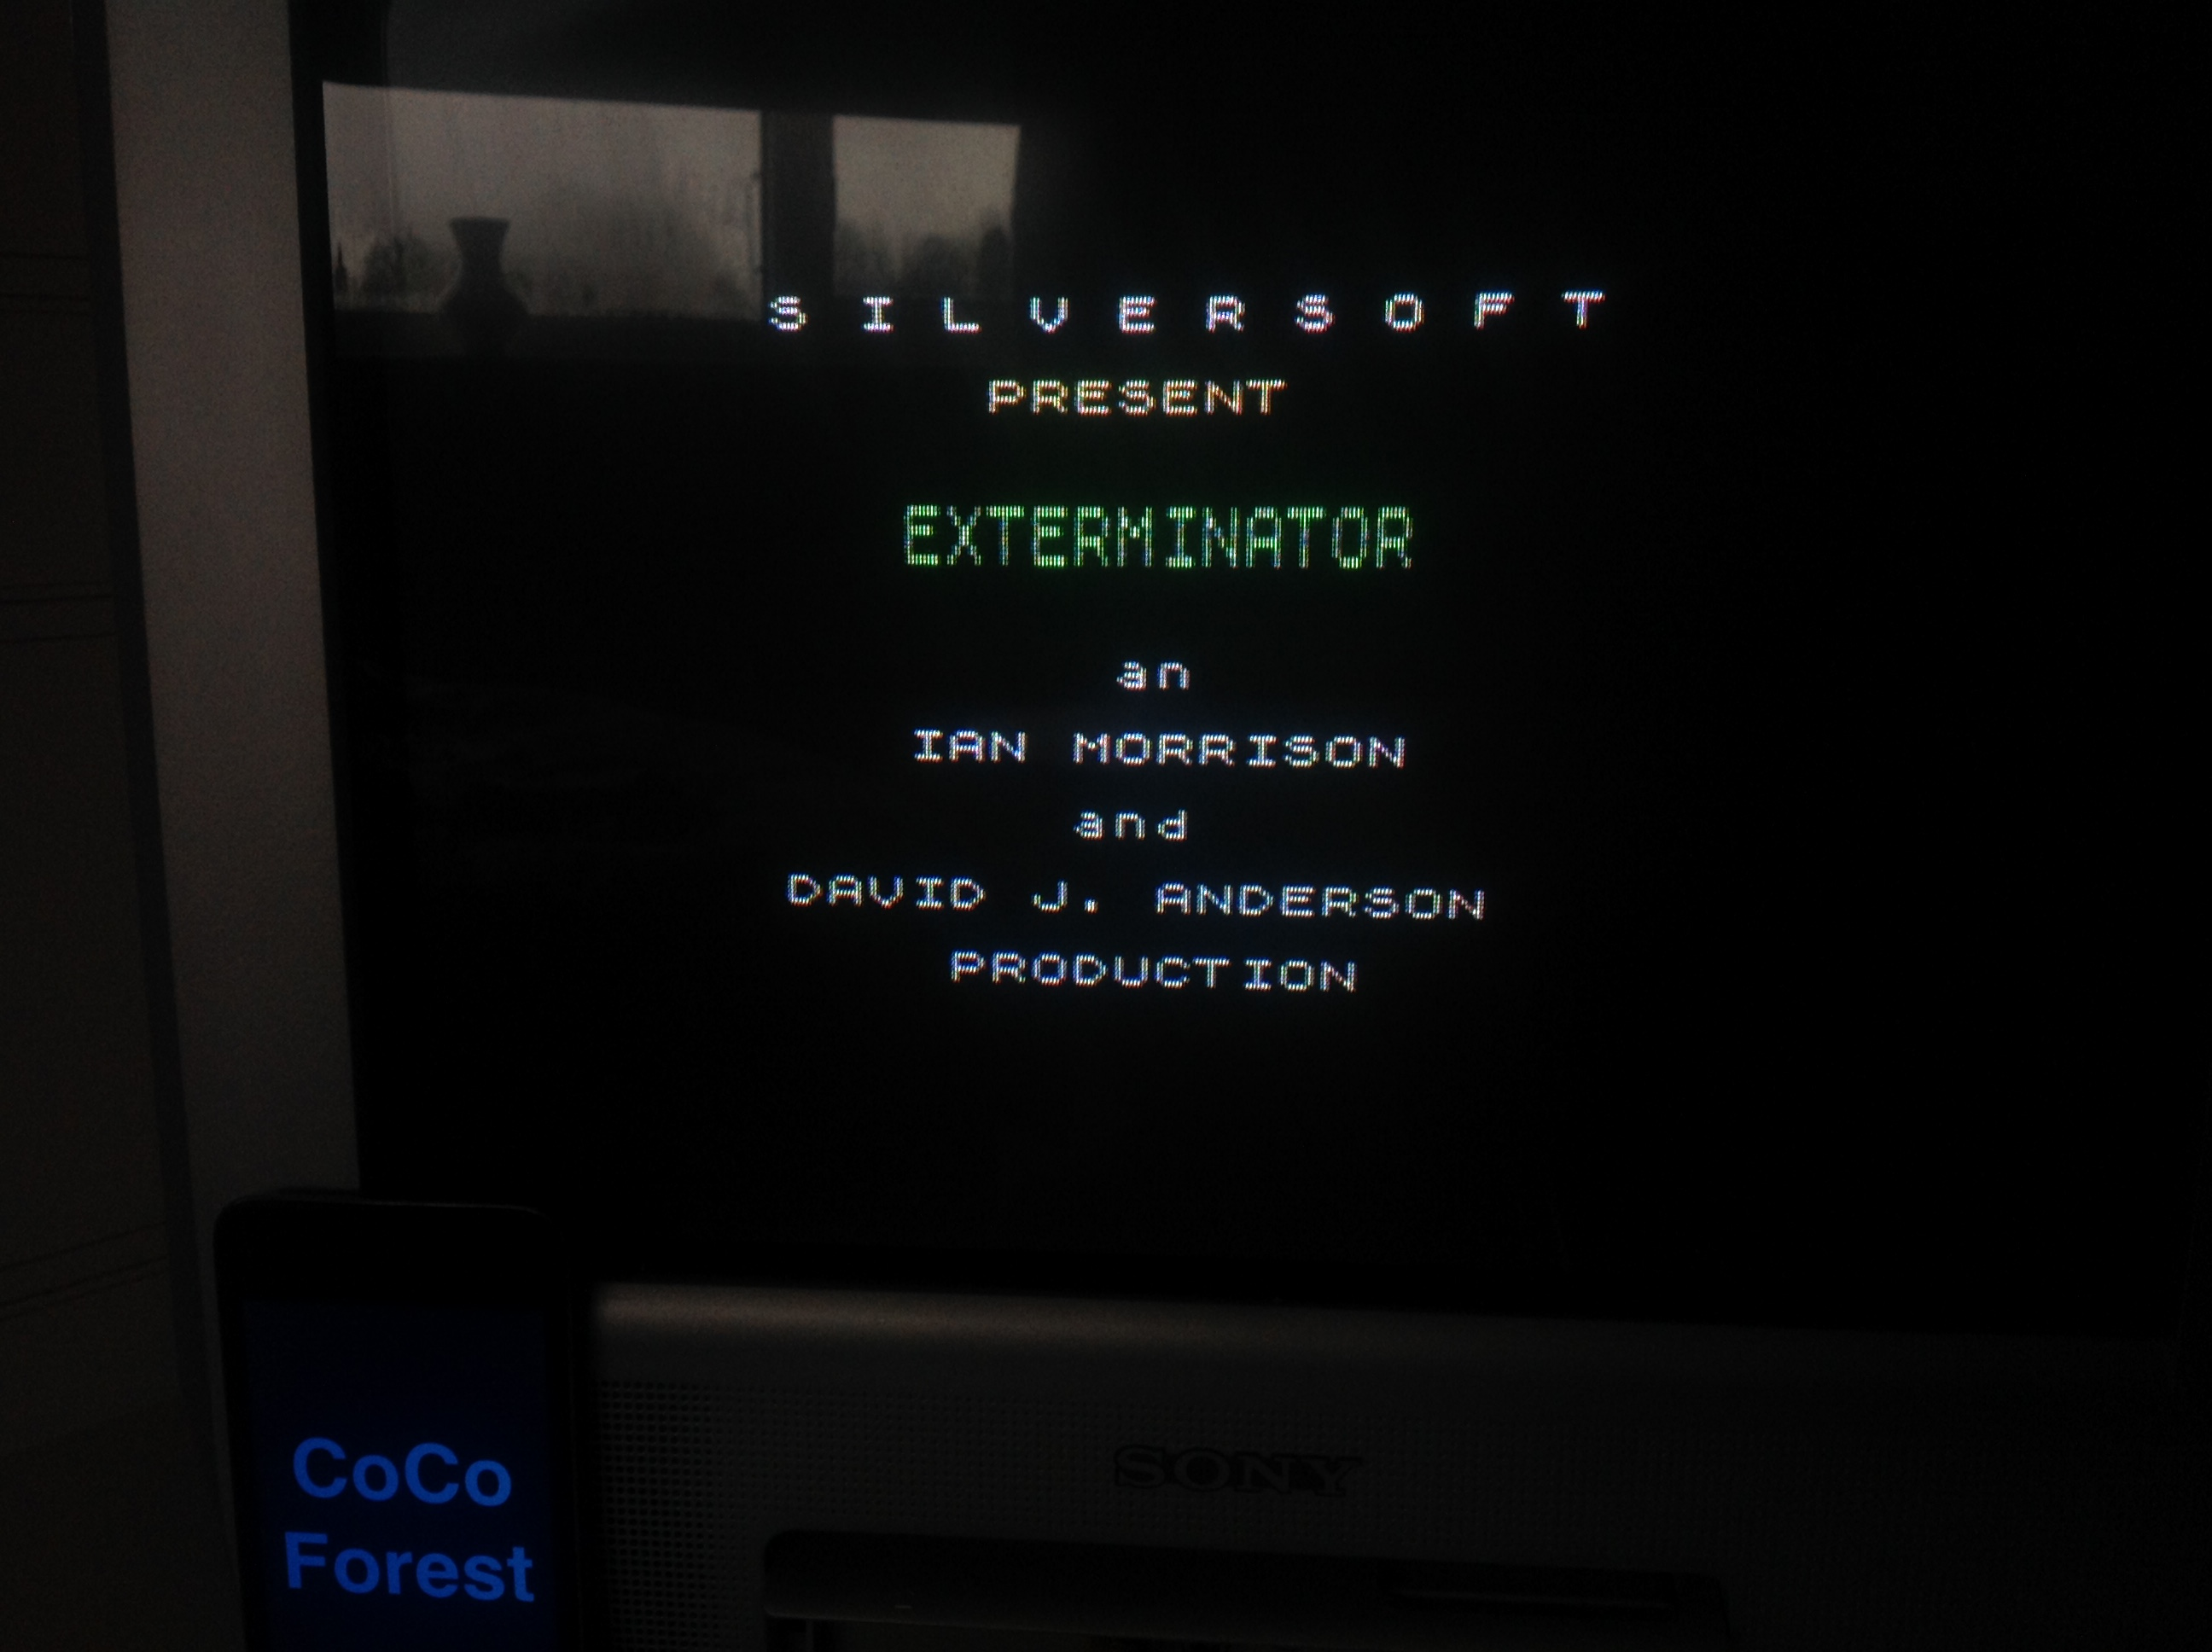 CoCoForest: Exterminator [Silversoft] (ZX Spectrum) 40,800 points on 2016-01-22 08:01:50